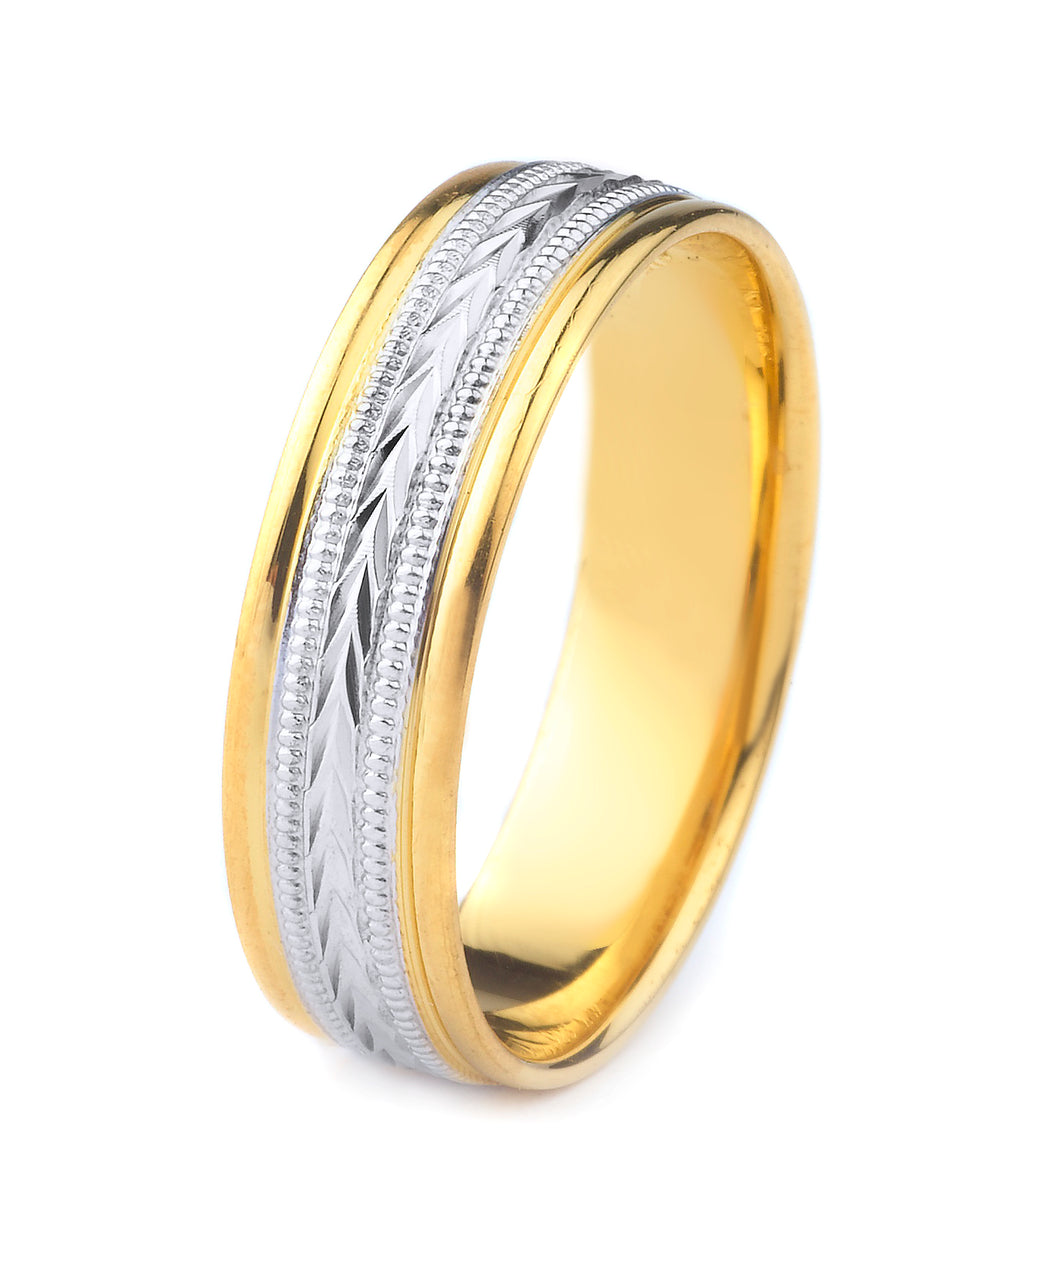 10K GOLD MENS TWO TONE WEDDING BAND WITH WHEAT & MILGRAIN DESIGN CENTER AND POLISHED EDGES